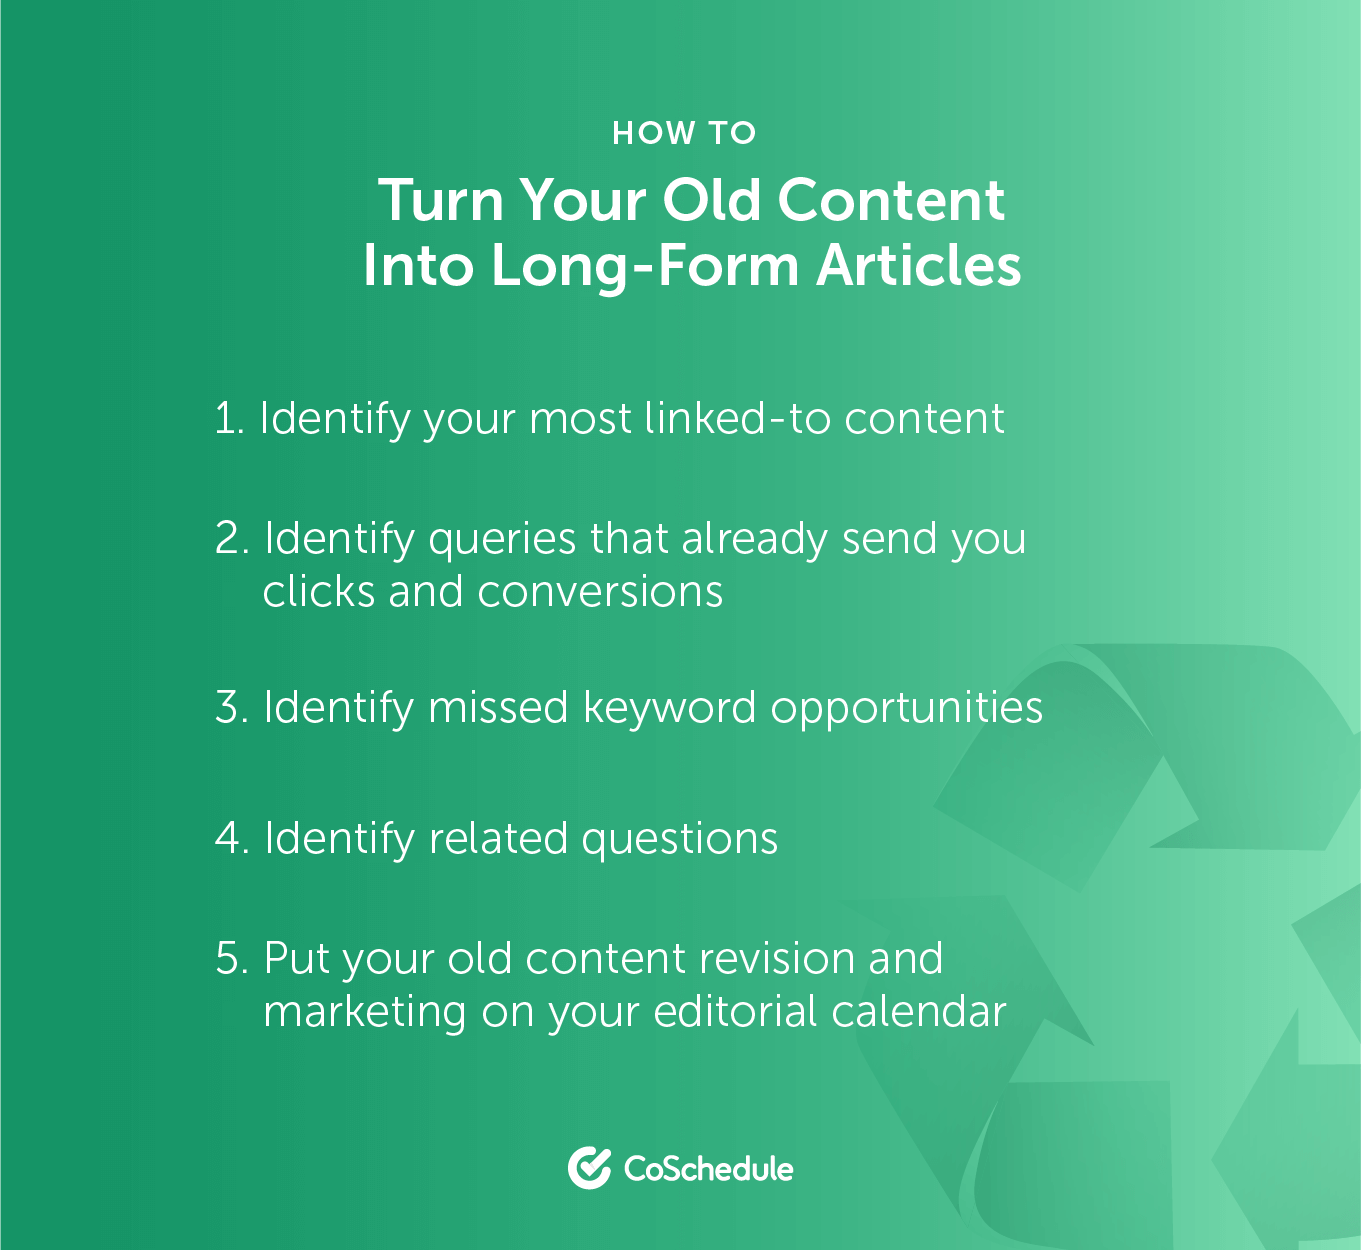 Steps to create long-form articles from old content graphic